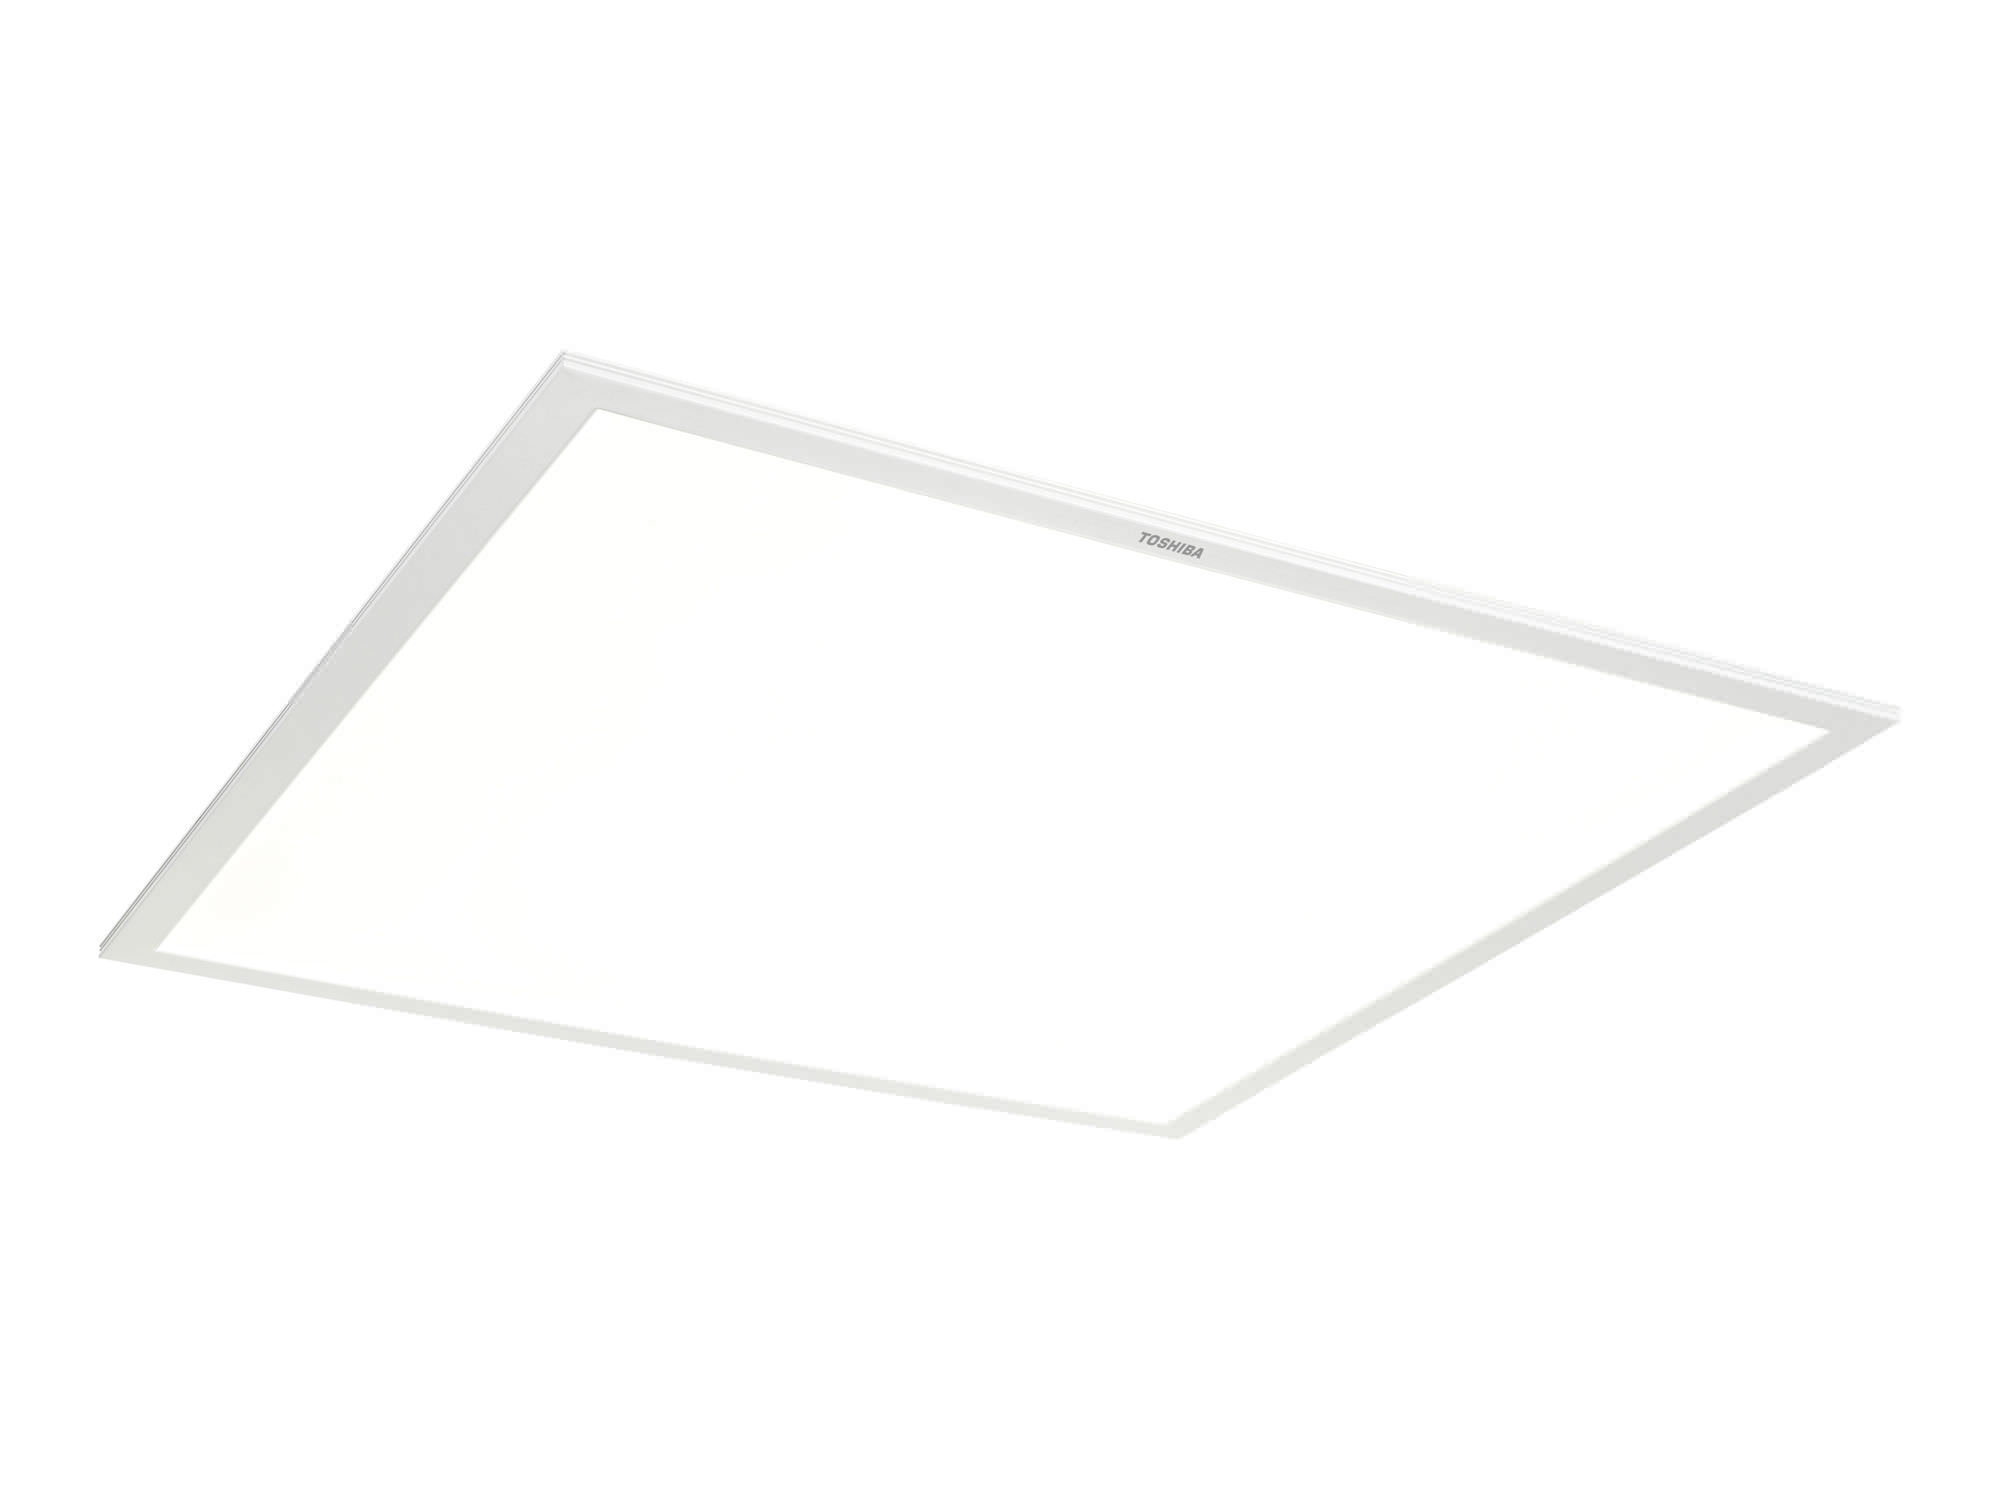 Recessed ceiling light fixture led square aluminum e core recessed ceiling light fixture led square aluminum e core led panel 2 aloadofball Image collections